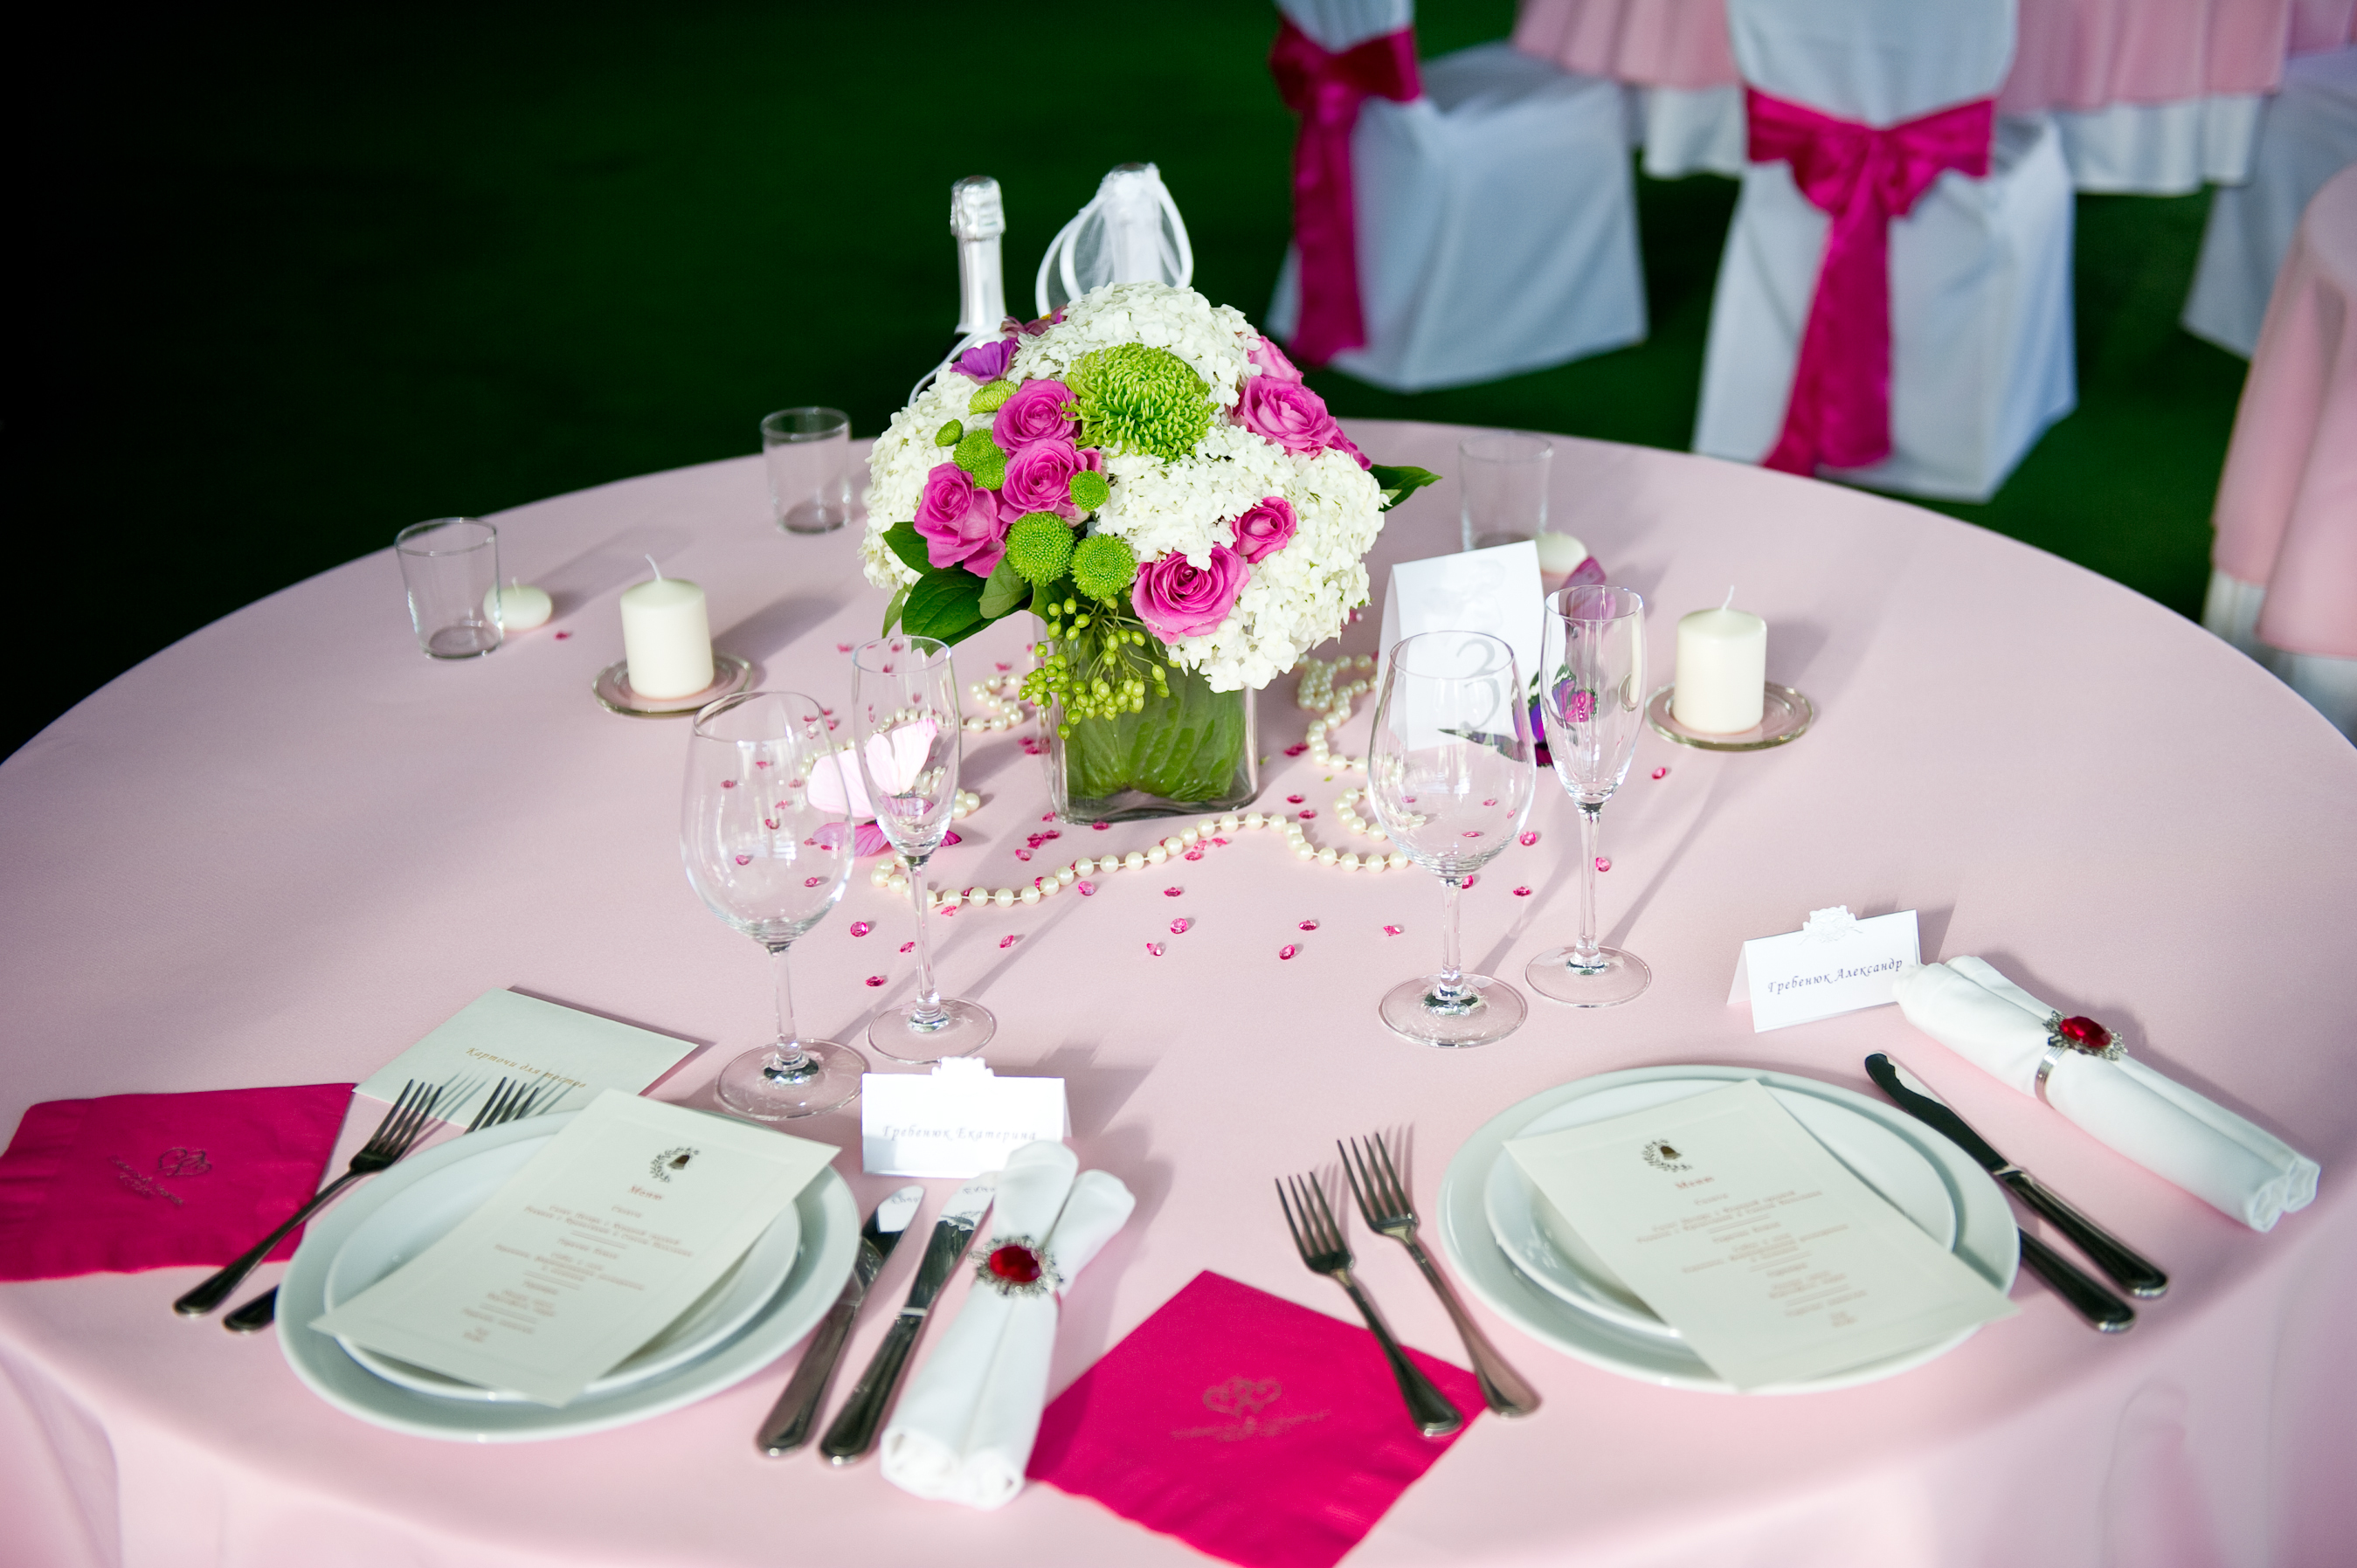 Reception, Flowers & Decor, Stationery, white, pink, green, gold, Bride Bouquets, Bride, Candles, Invitations, Flowers, Groom, Rings, Menus, Cards, Wedding, Table, And, Napkin, Place, Butterflies, Decoration, Stationary, Crystals, Beads